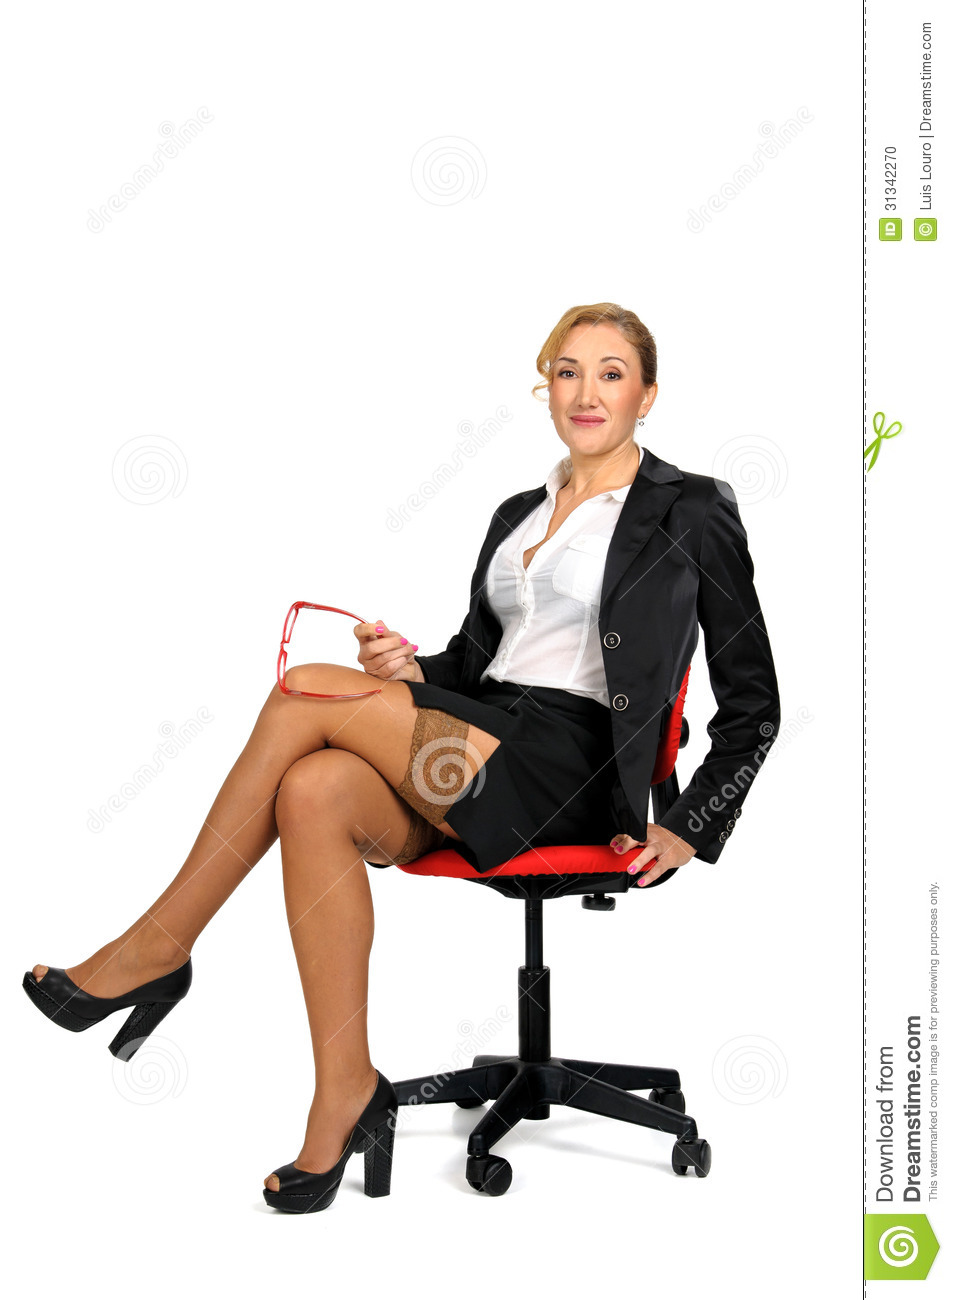 Sexy business woman seated in a chair isolated in white.